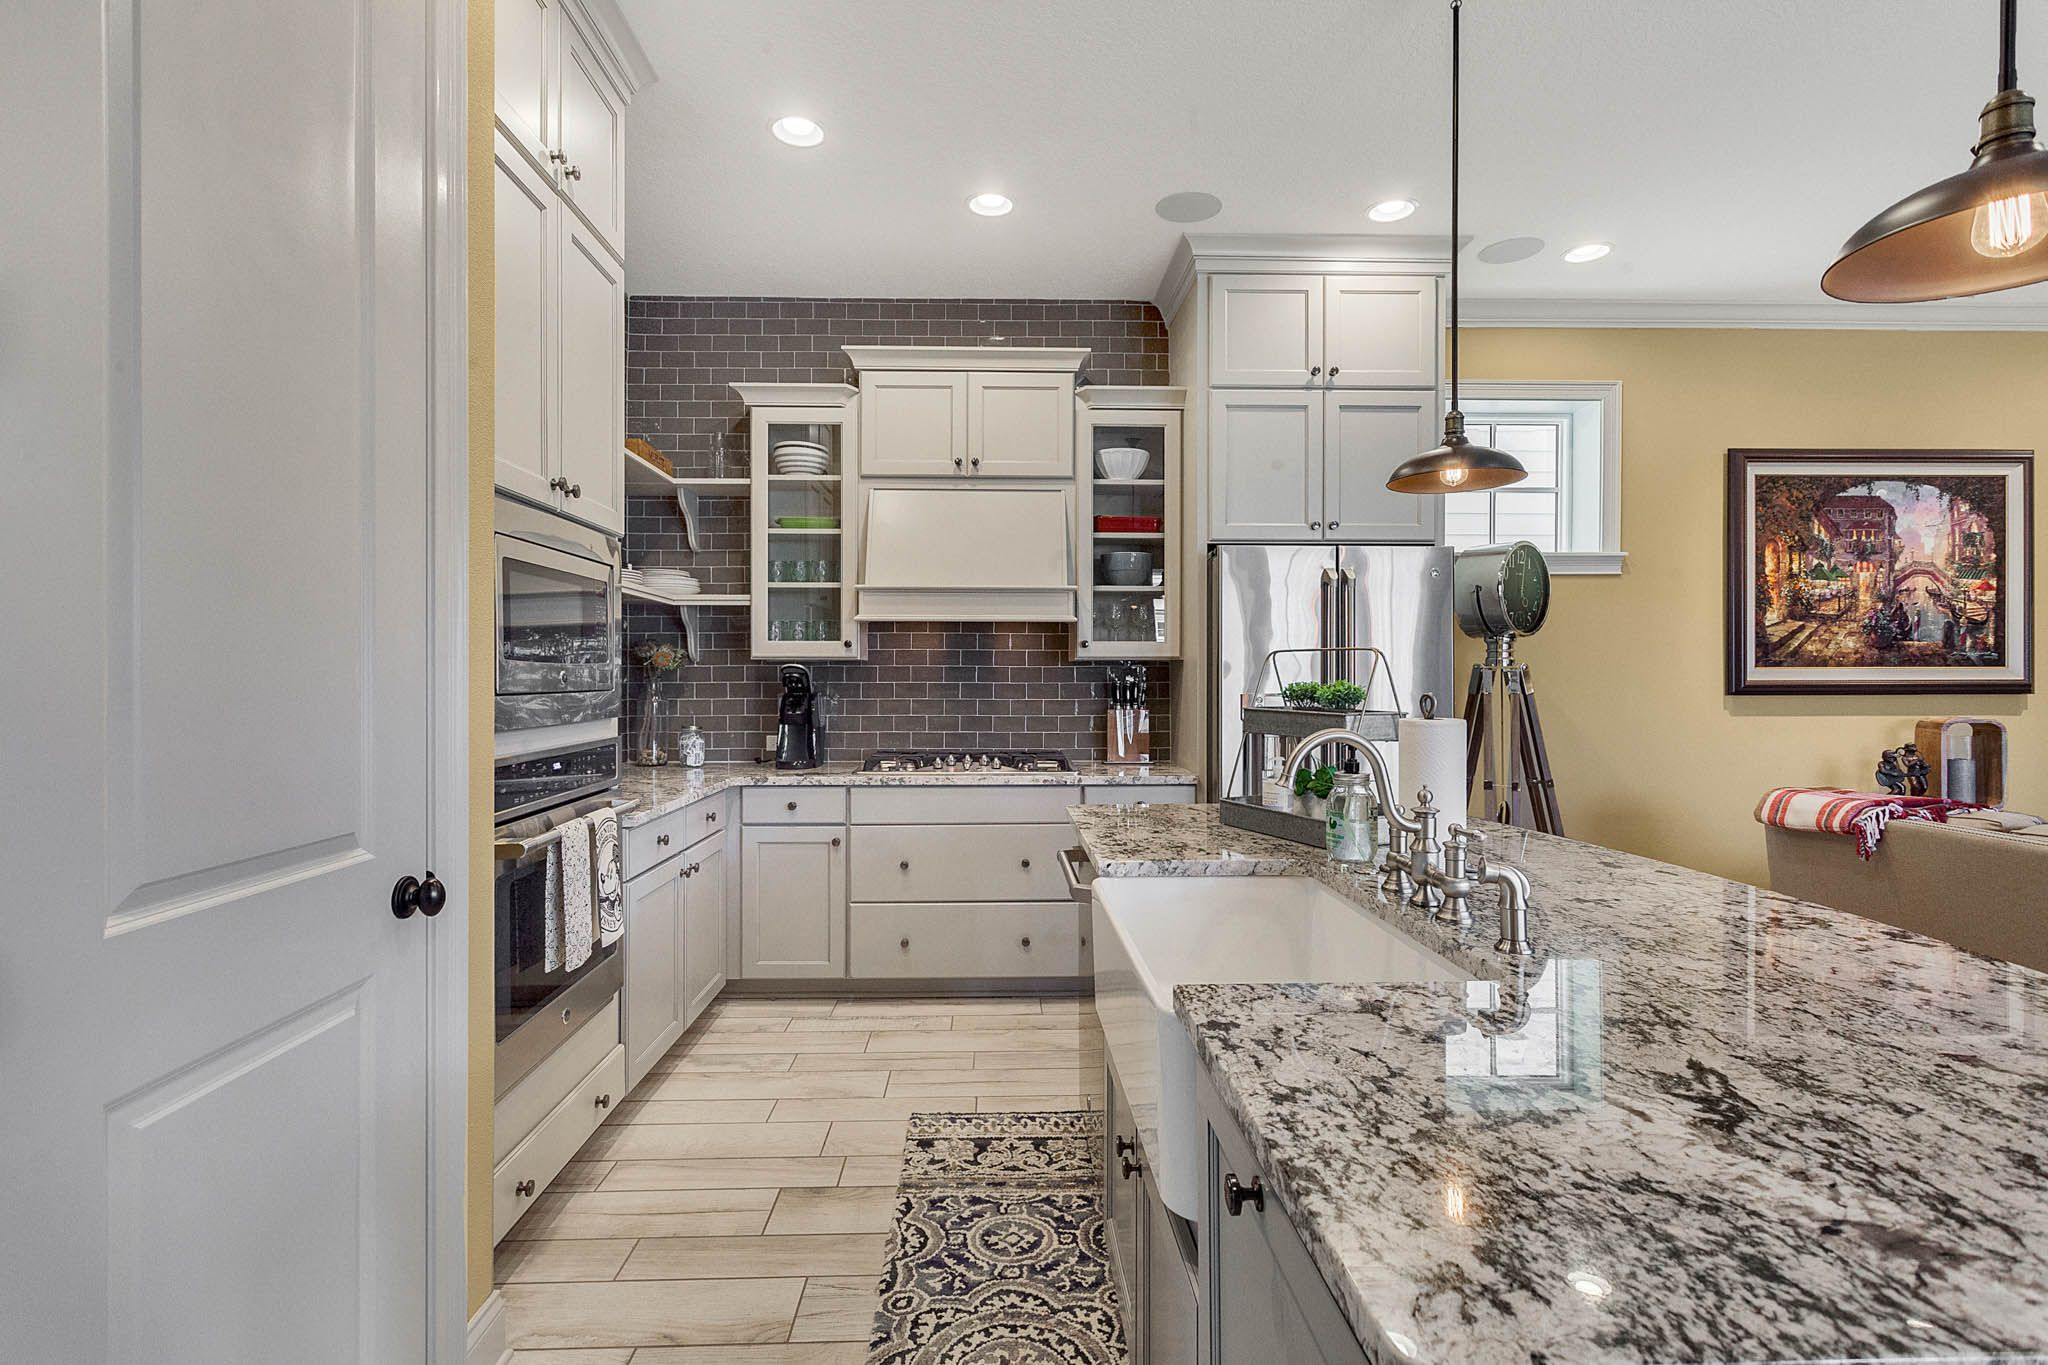 Pin By The Pozek Group On 1511 Castile Street Kissimmee Fl 34747 Kitchen Cabinets Home Kitchen